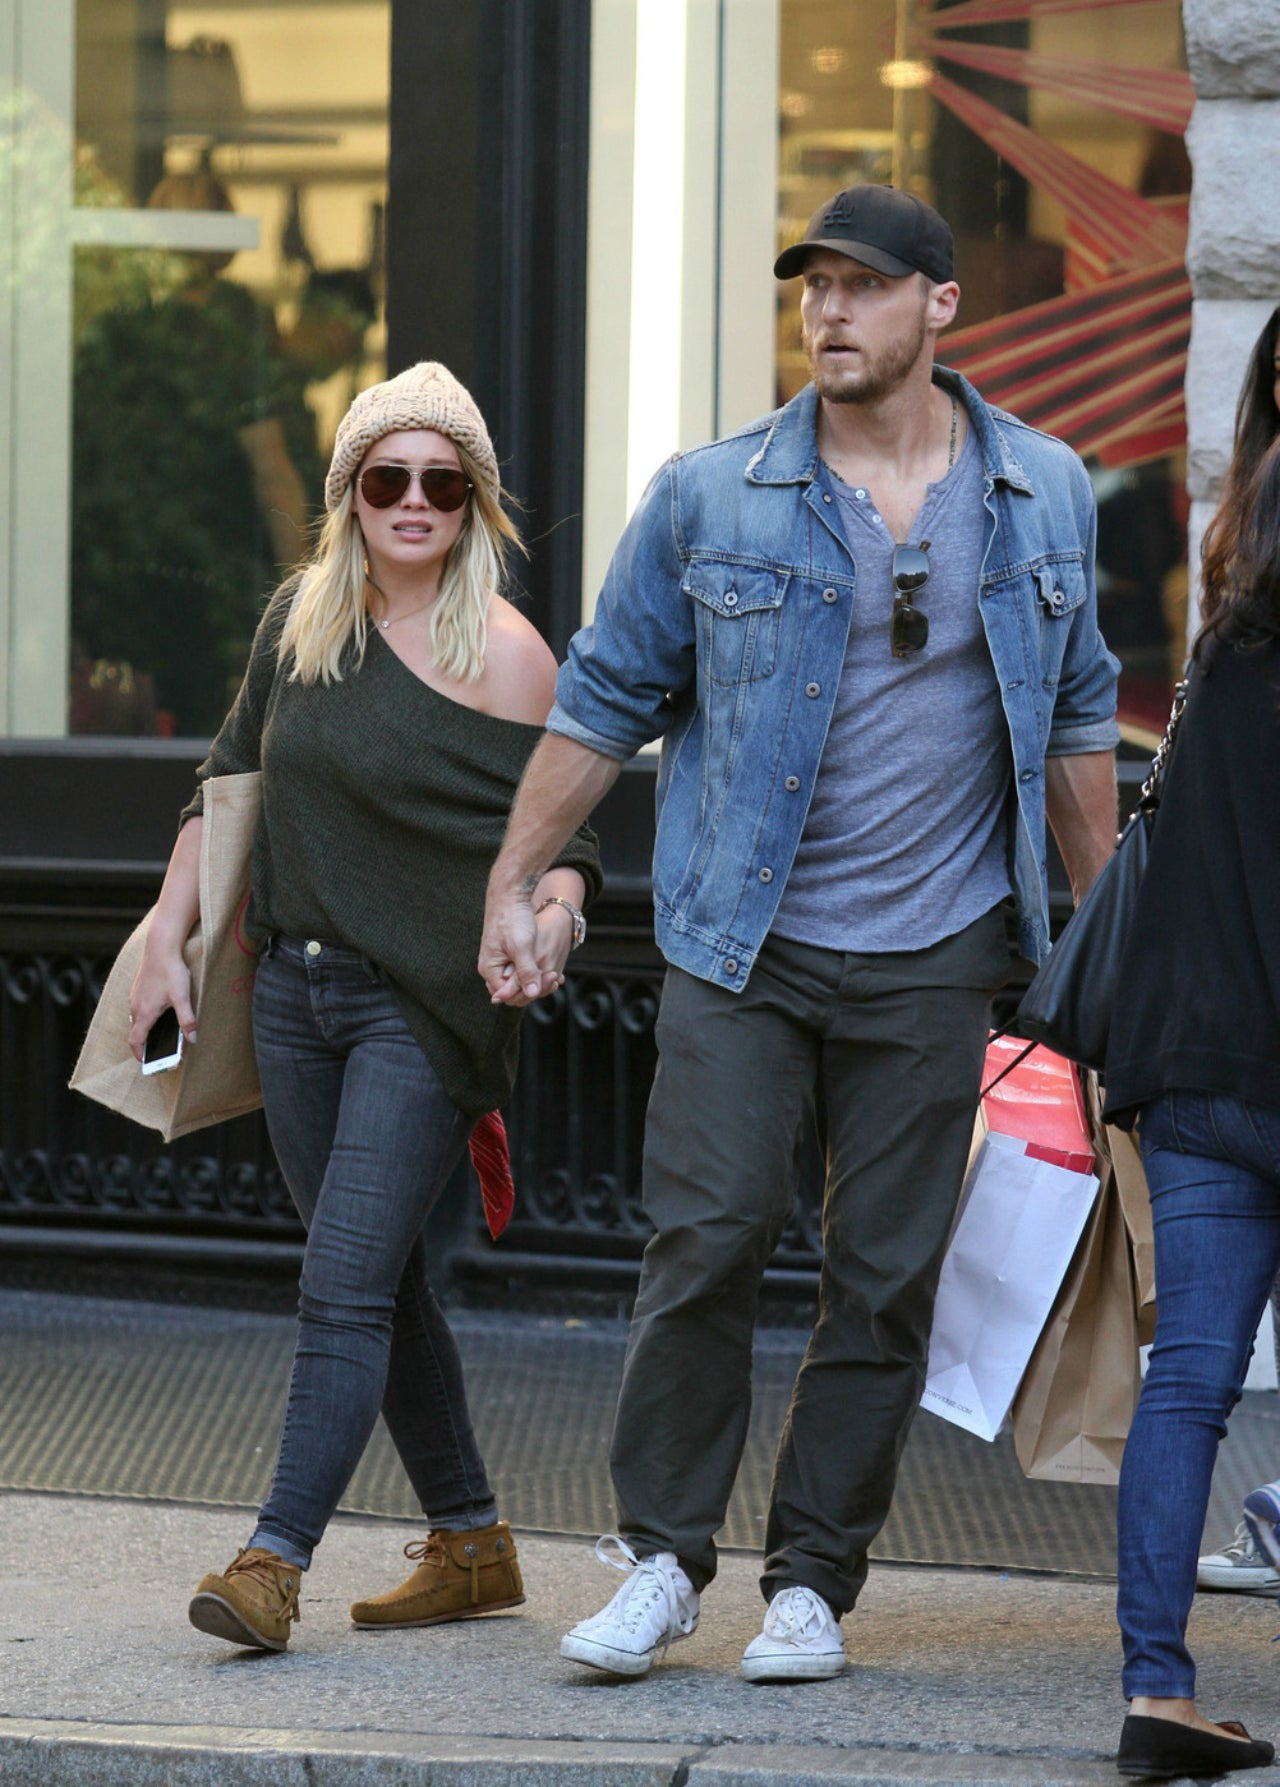 duff dating The couple first started dating three years ago duff confirmed this past december that she is back together with koma, 30, for the third time.